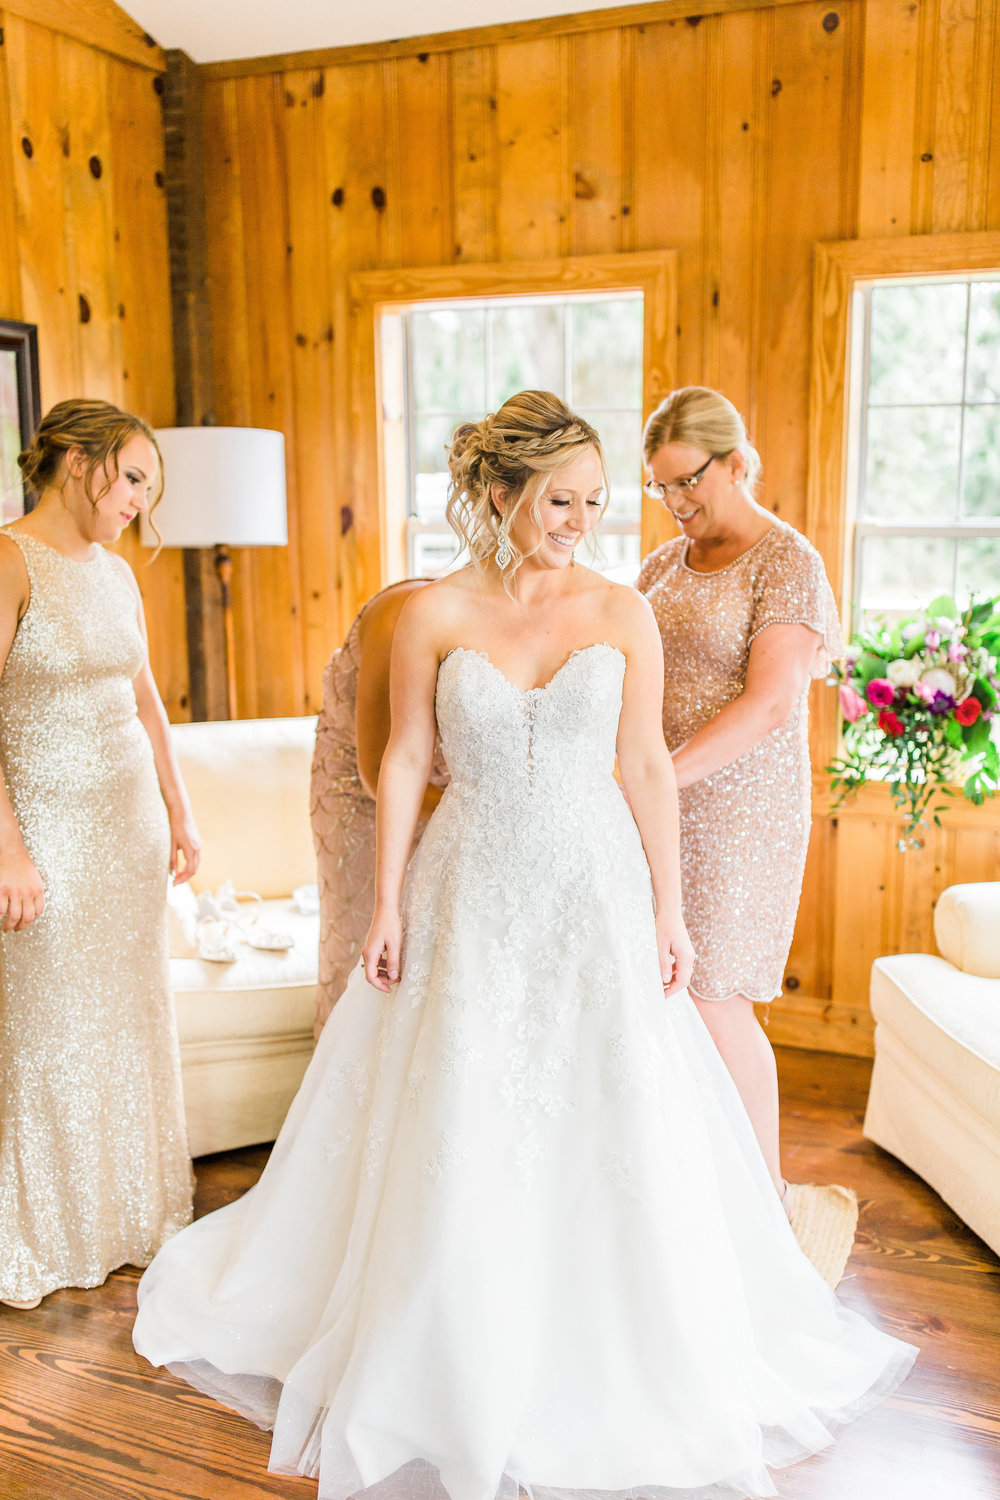 savannah-bridal-shop-i-and-b-couple-gretchen-and-alex-fun-and-unique-tropical-wedding-at-captains-bluff-st-simons-island-wedding-marianne-lucille-photography-8.jpg